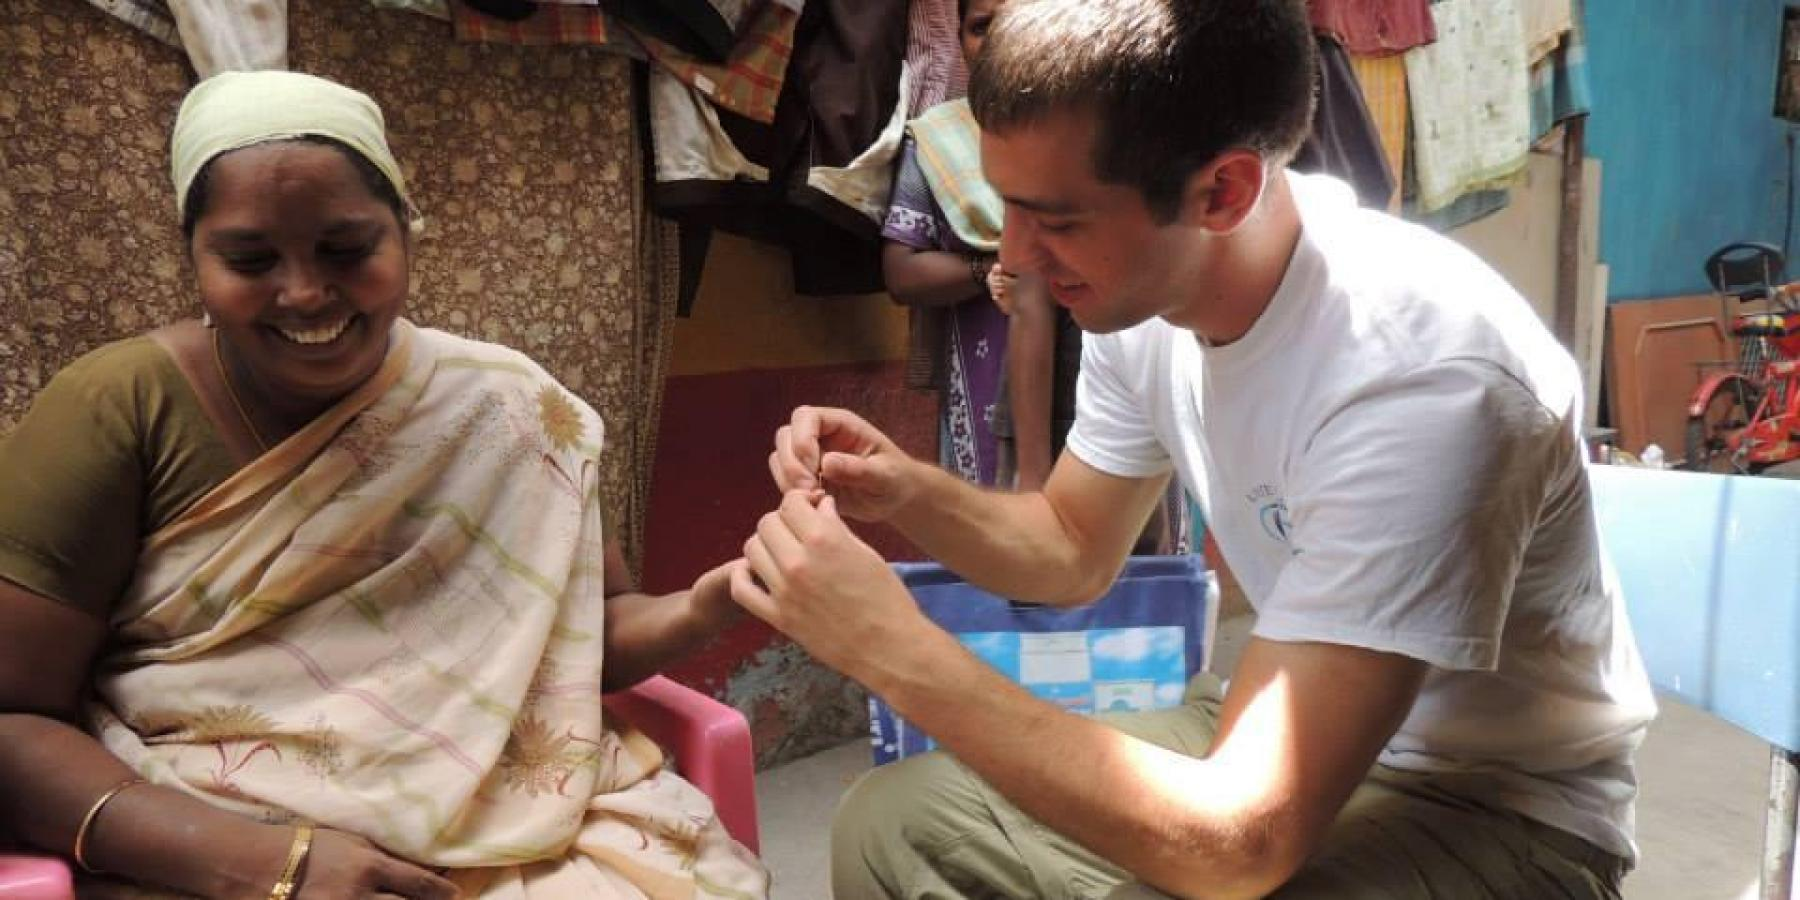 A medical student takes blood glucose levels at a mobile cataract clinic in Chennai, India